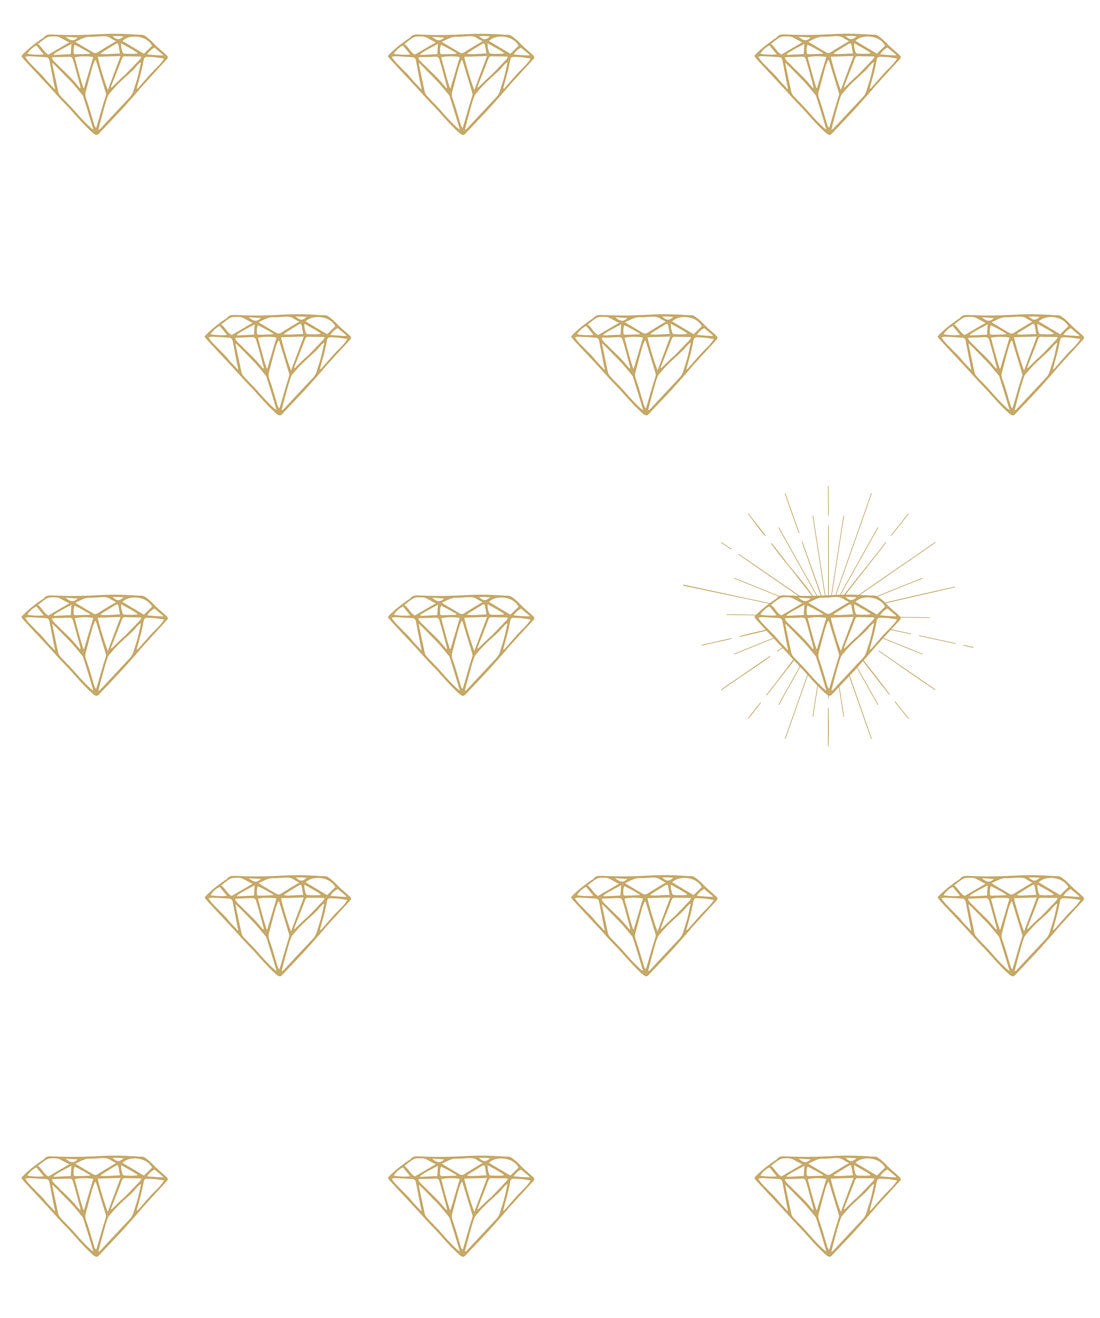 Gold Diamonds Wallpaper From The Muffin Mani Collection By Milton Burke Decor